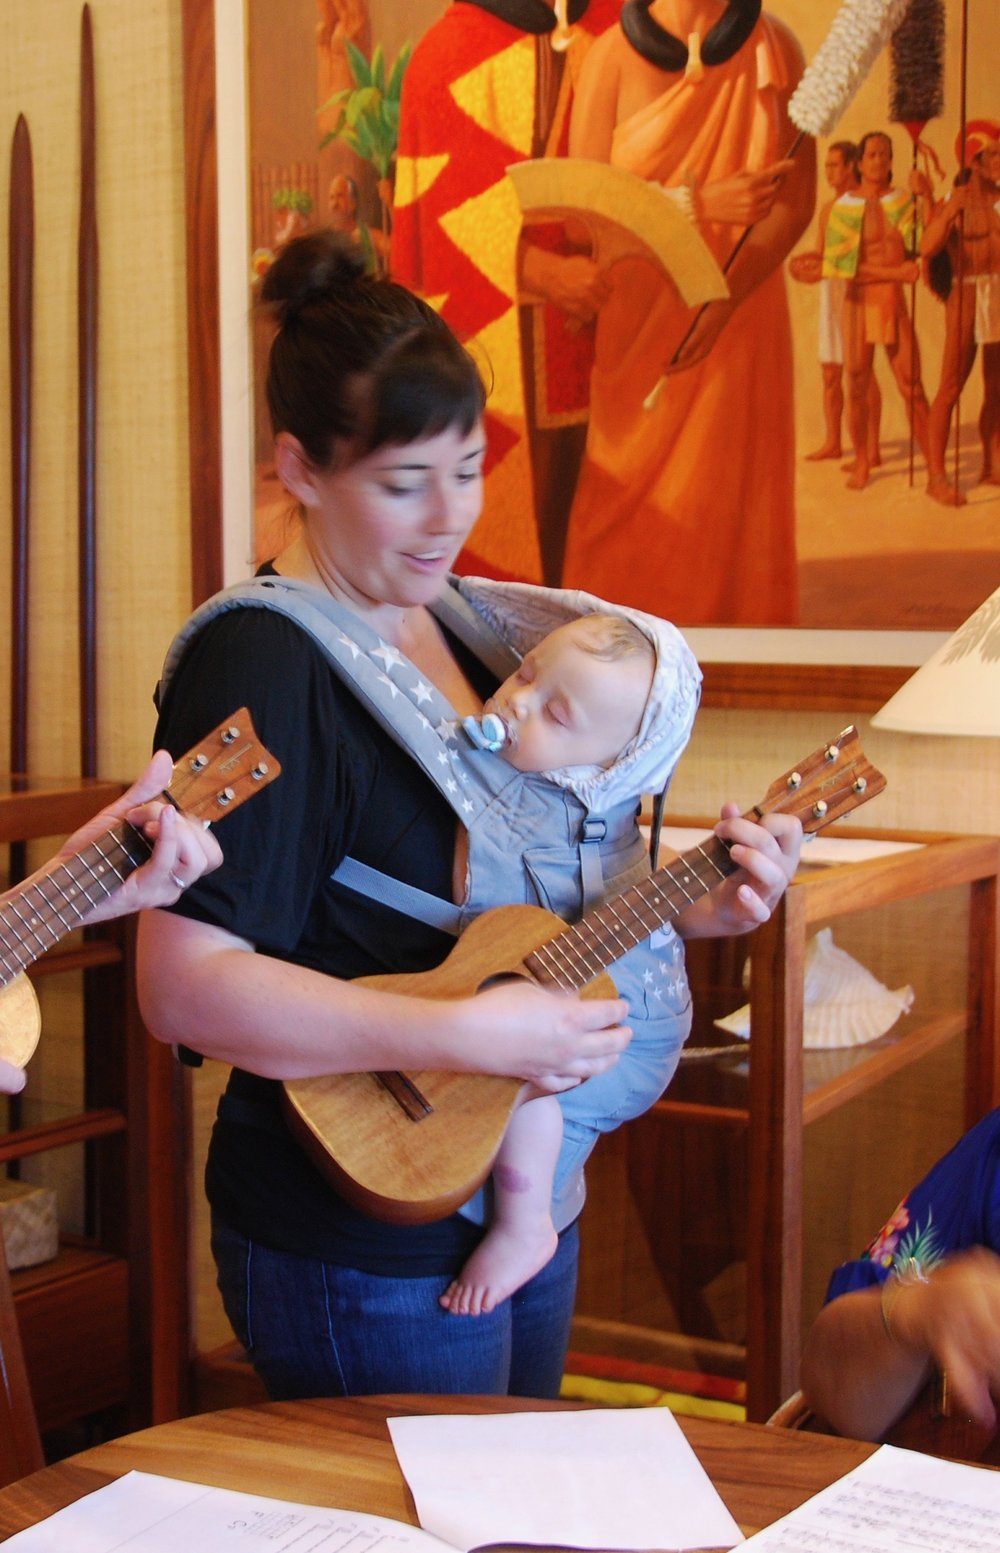 our first ukulele lesson, 7/27/11